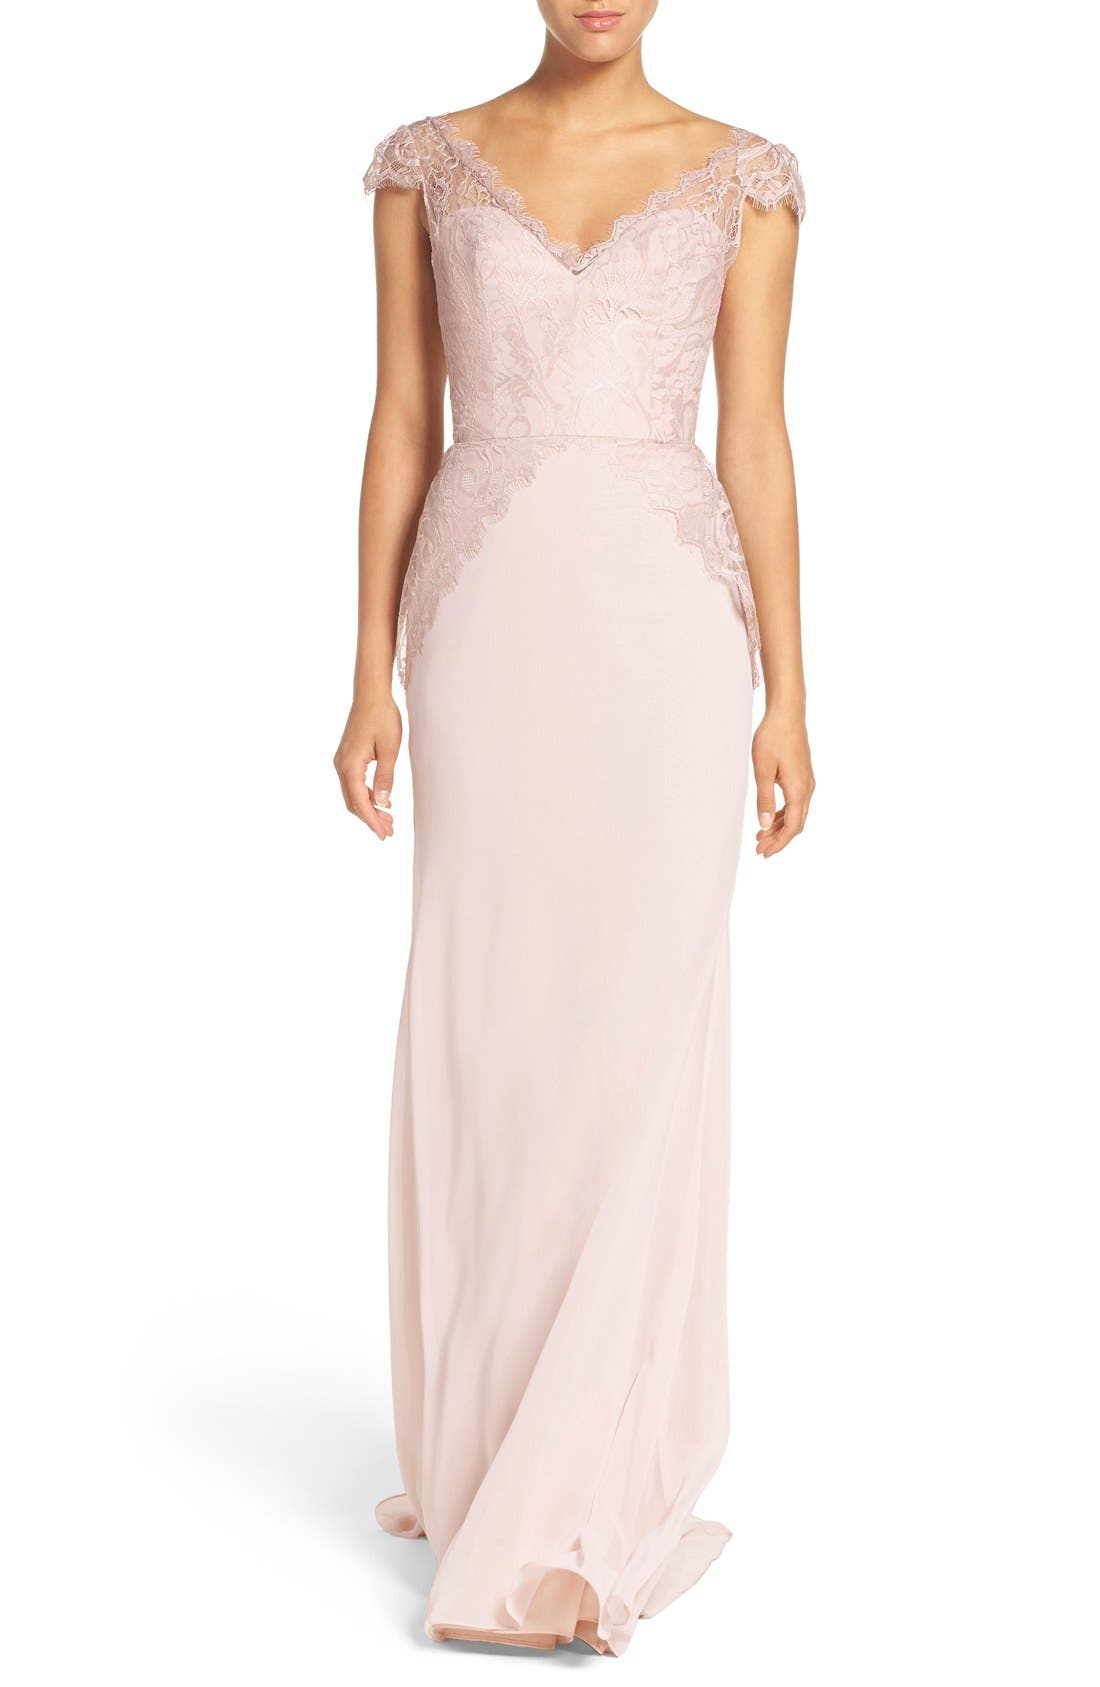 Main Image - Hayley Paige Occasions Cap Sleeve Lace & Chiffon Trumpet Gown